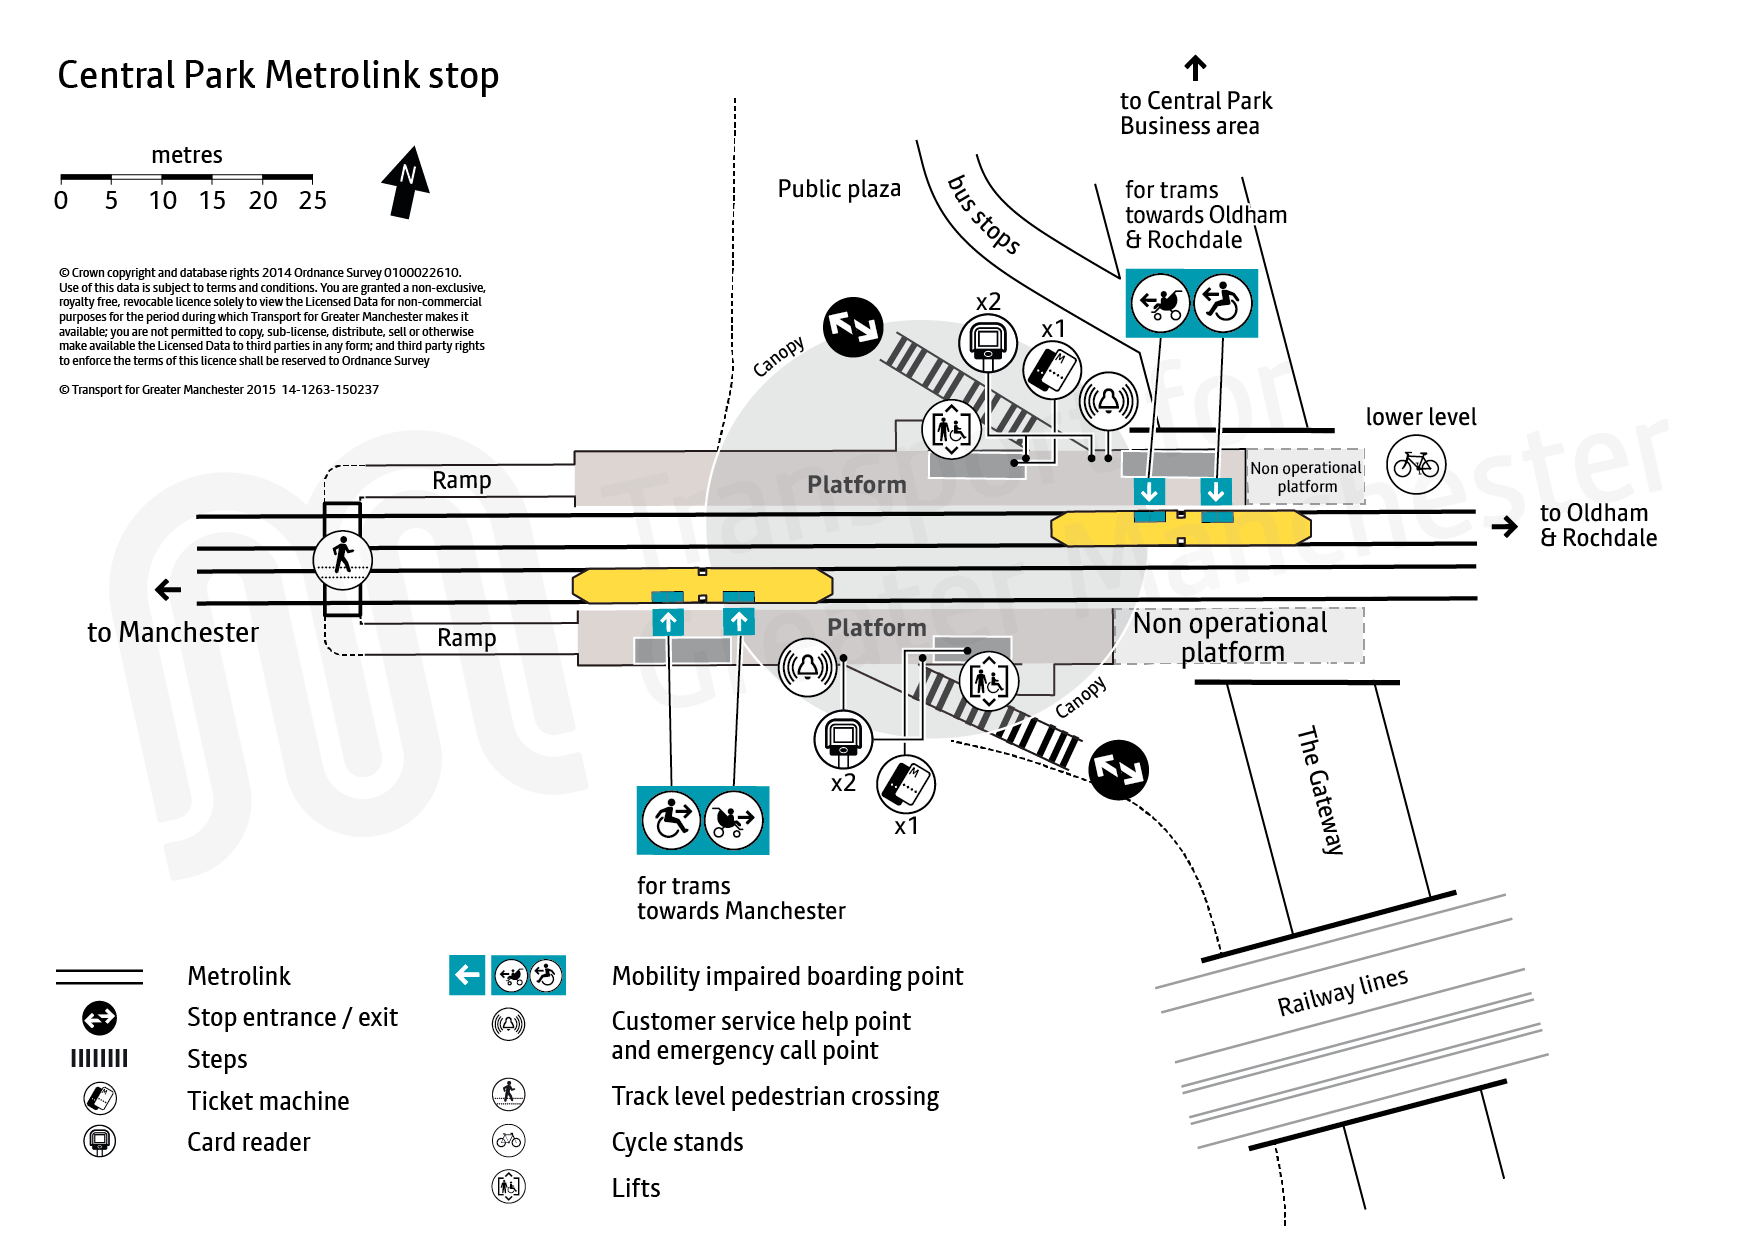 Stop map for Central Park tram stop